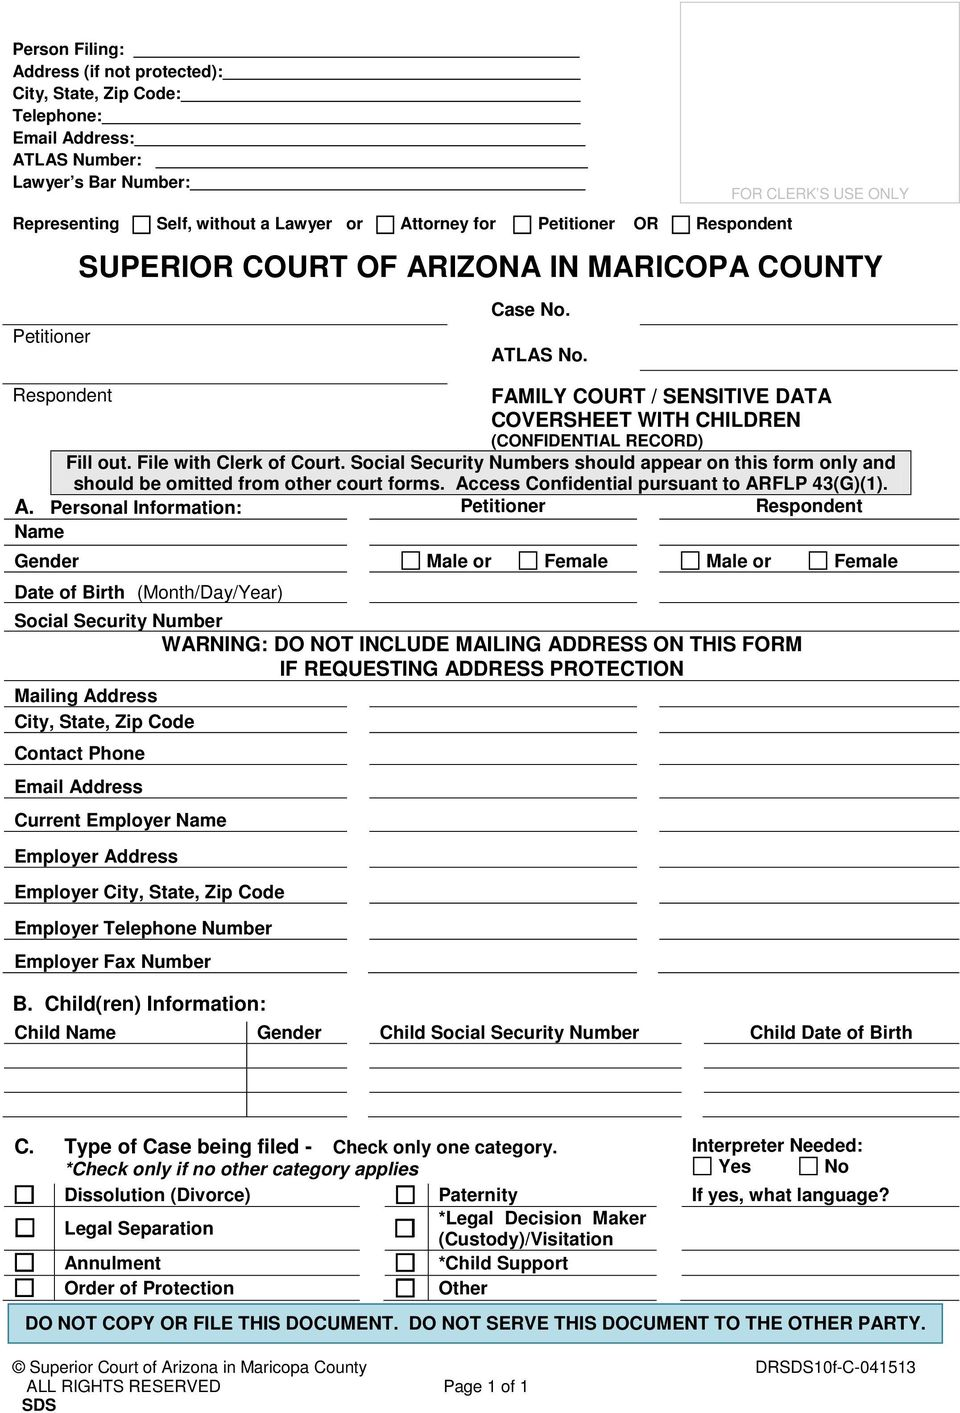 File with Clerk of Court. Social Security Numbers should appear on this form only and should be omitted from other court forms. Ac